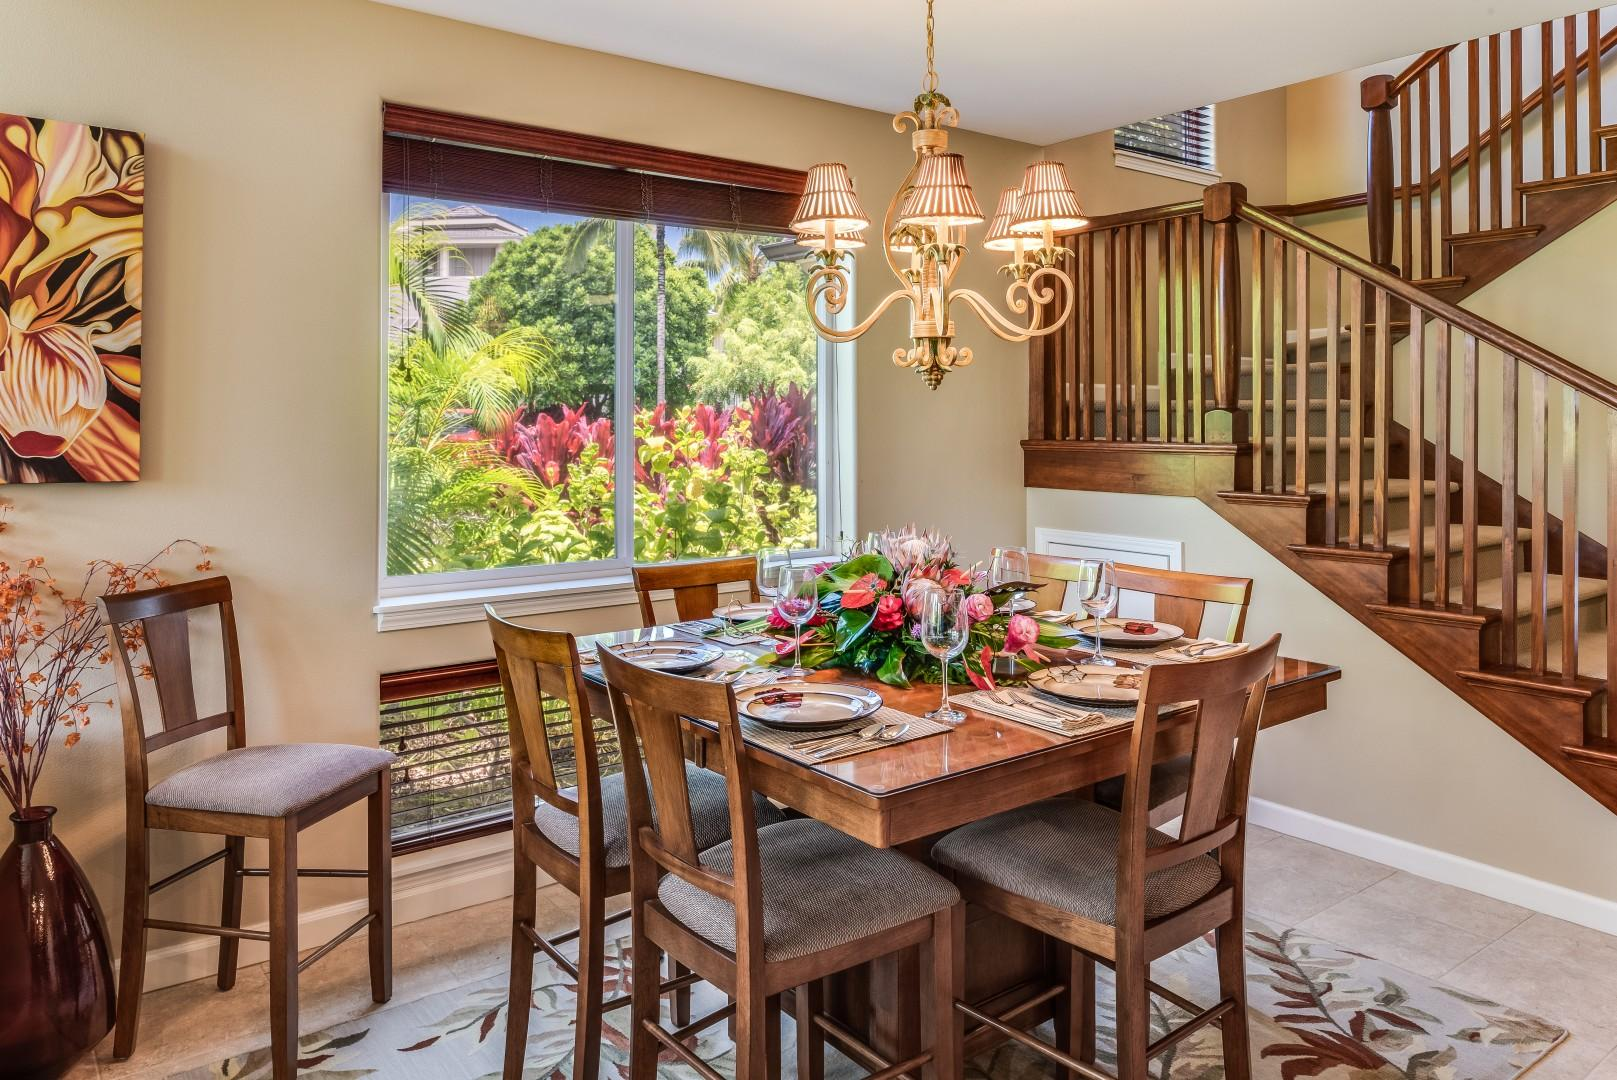 Elegant Dining Area w/ Views of the Lush Landscape